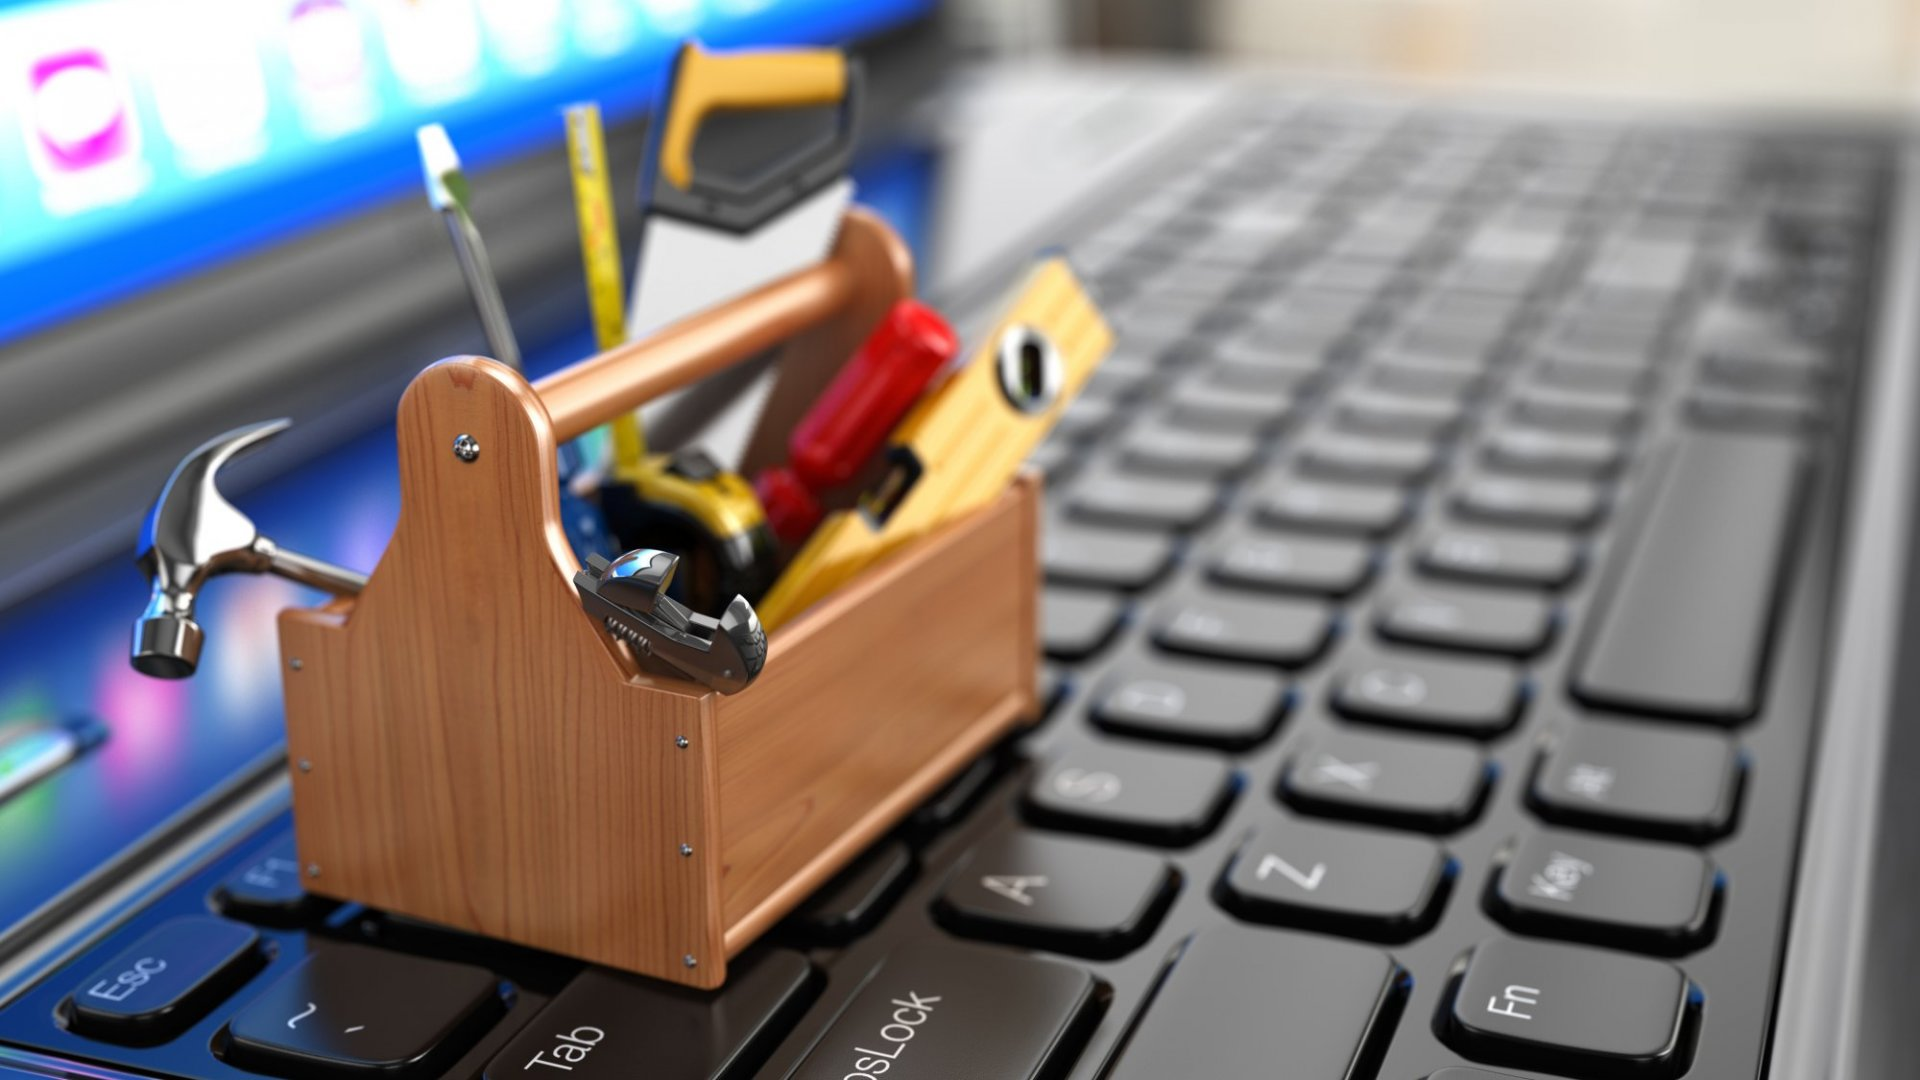 5 Ways You Should Be Using Your IT Staff (Beyond Fixing Computers)